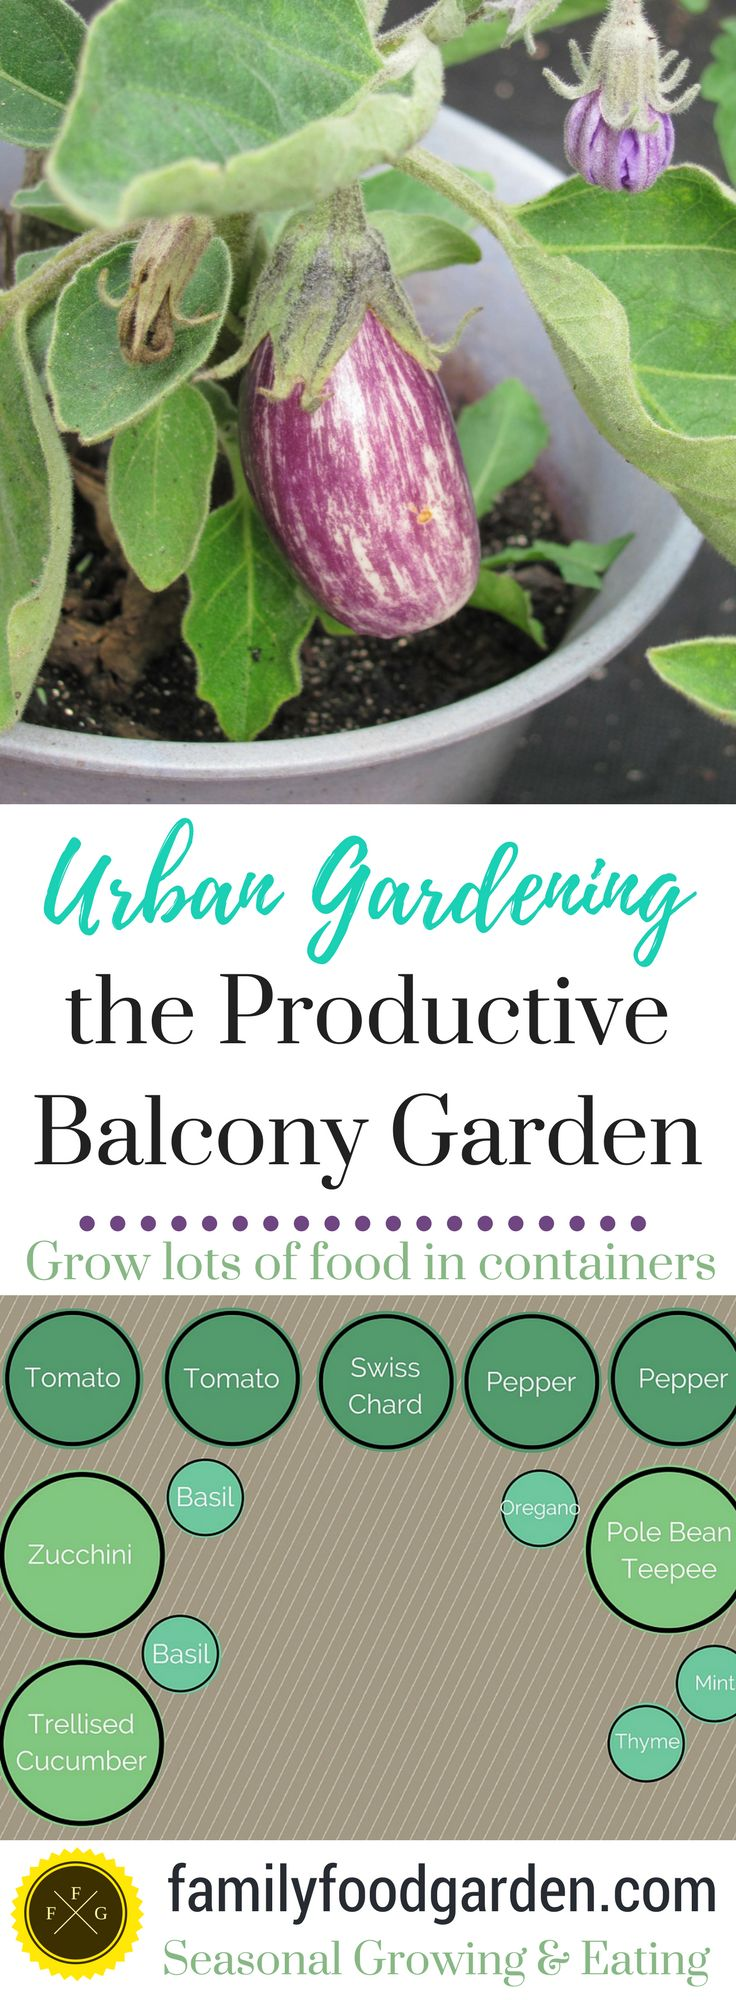 Do you live in the city? Do you still want to grow some food? If you have enough sun exposure then you could grow aproductive little balcony garden!  Today I wanted to share some crops that are great for urban container gardening. They alsohappen to have great dollar value which means that even